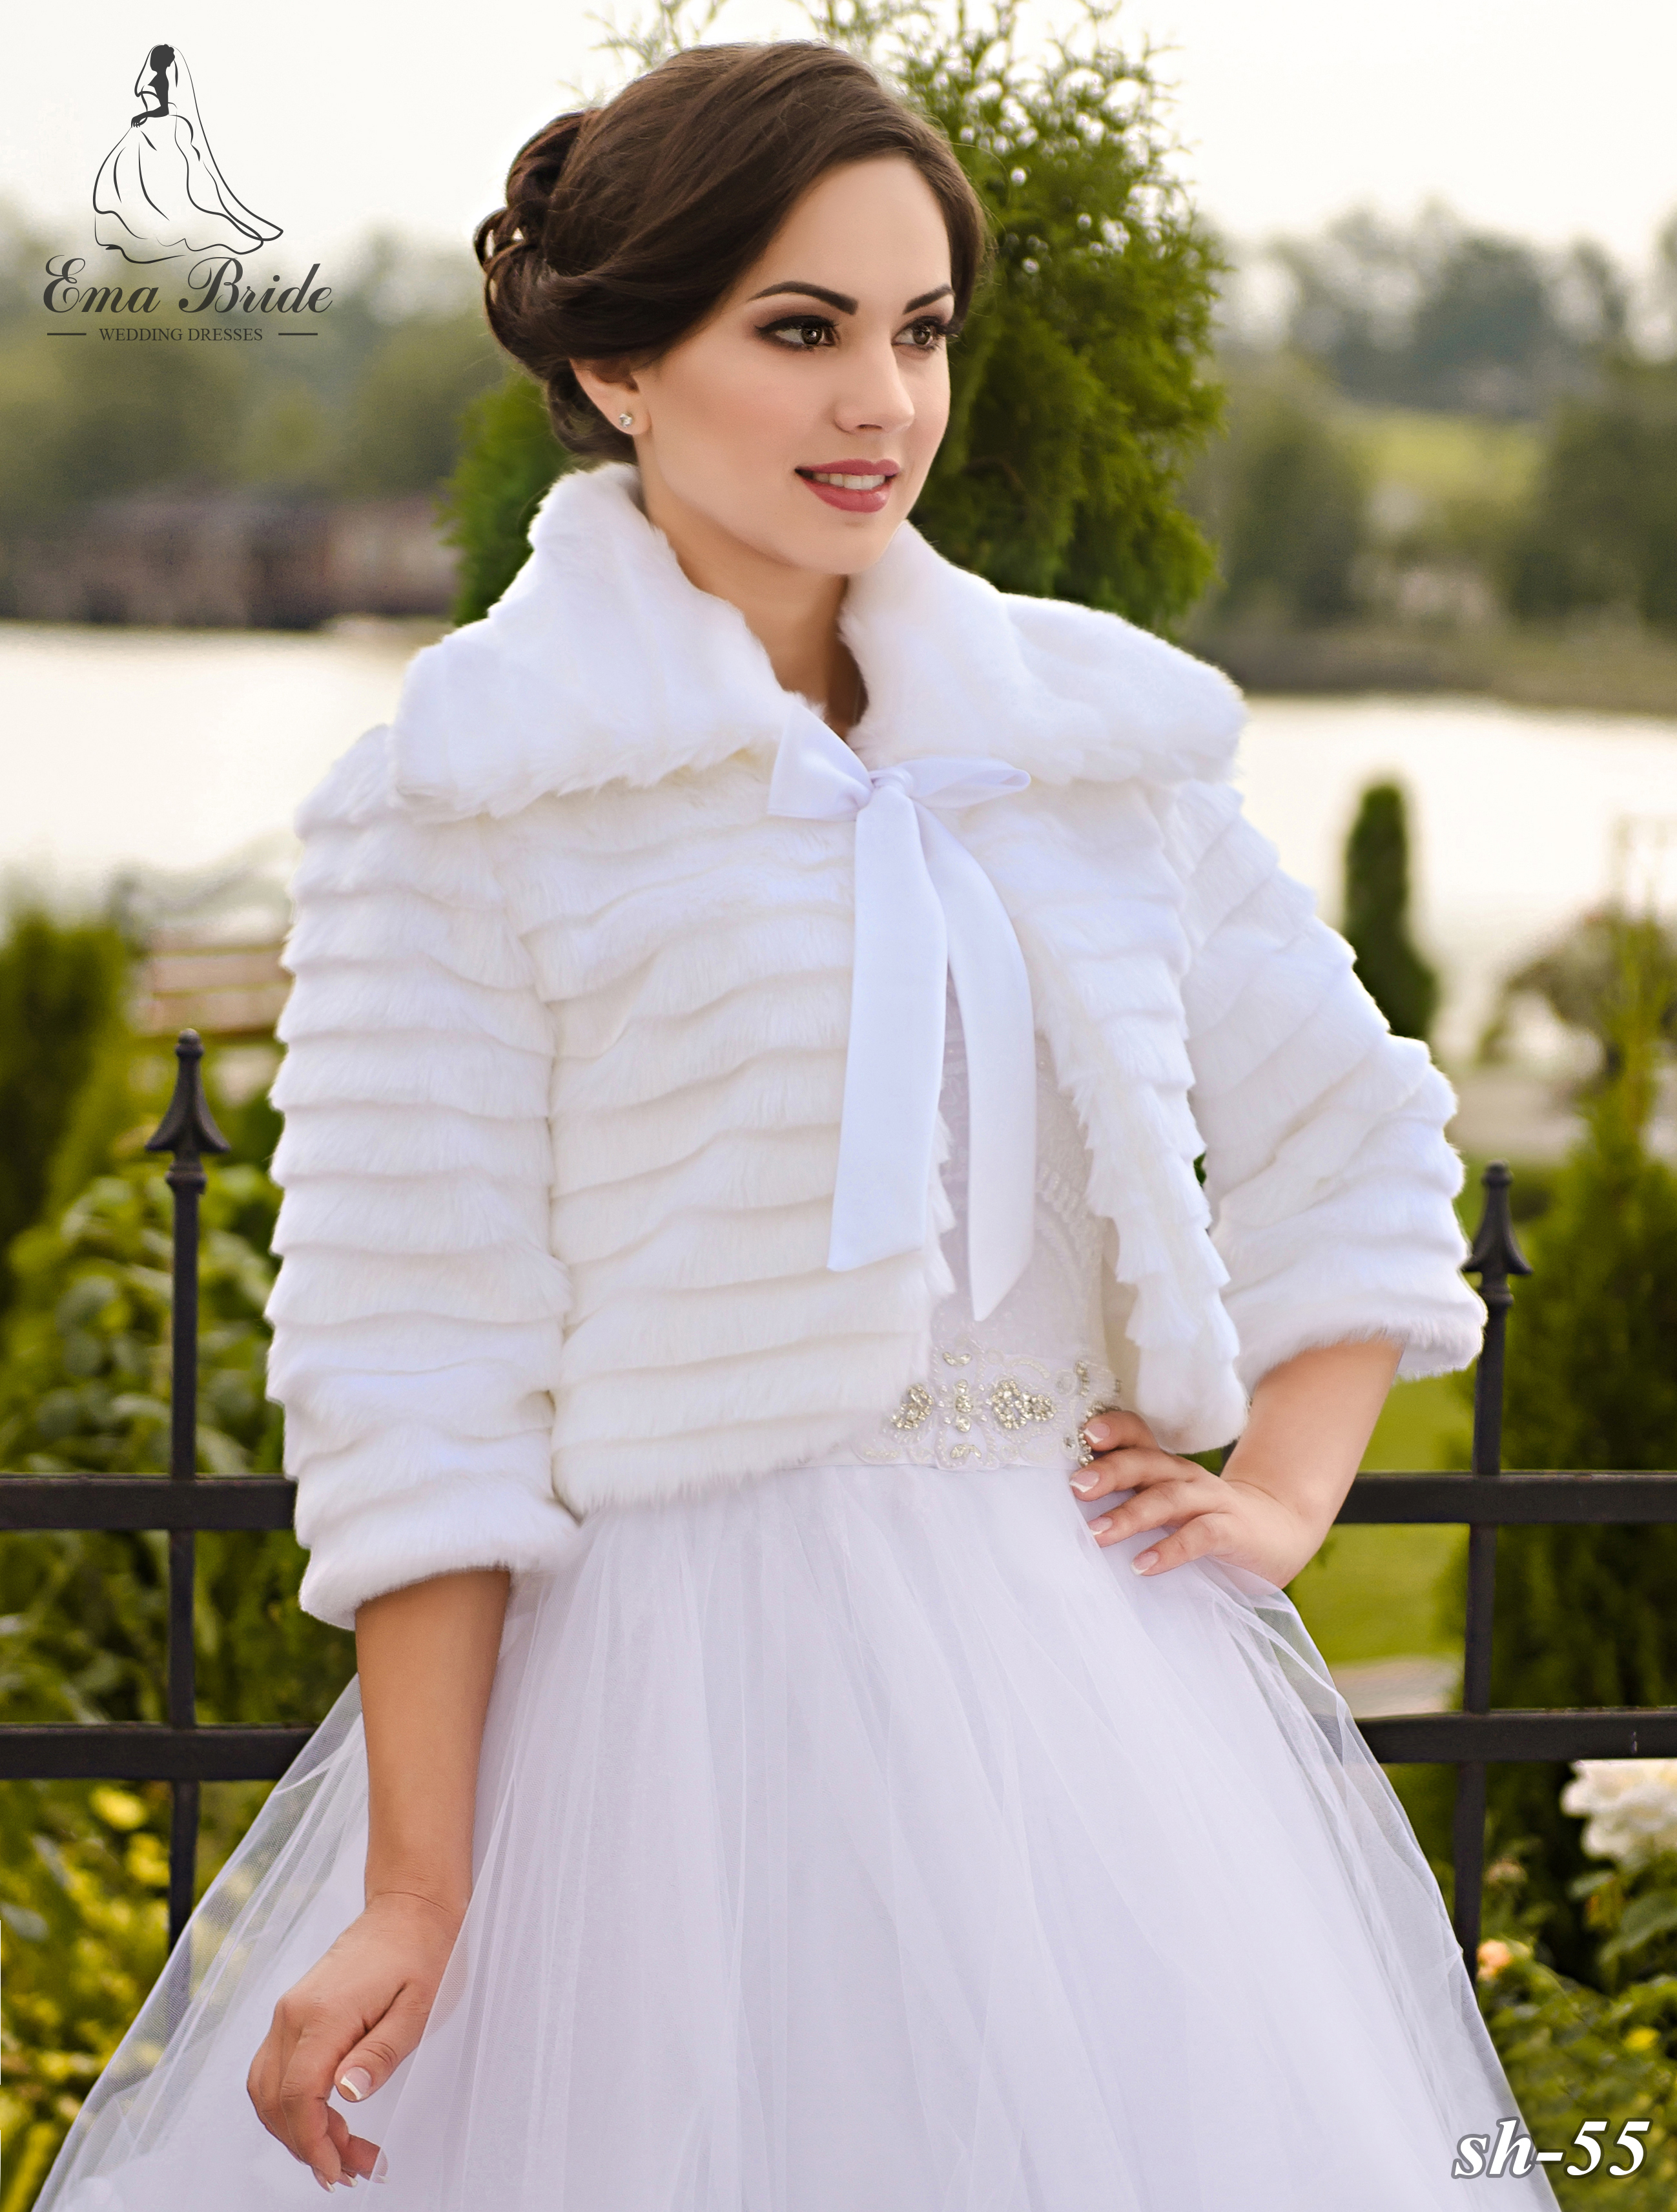 Wedding fur coat SH-55